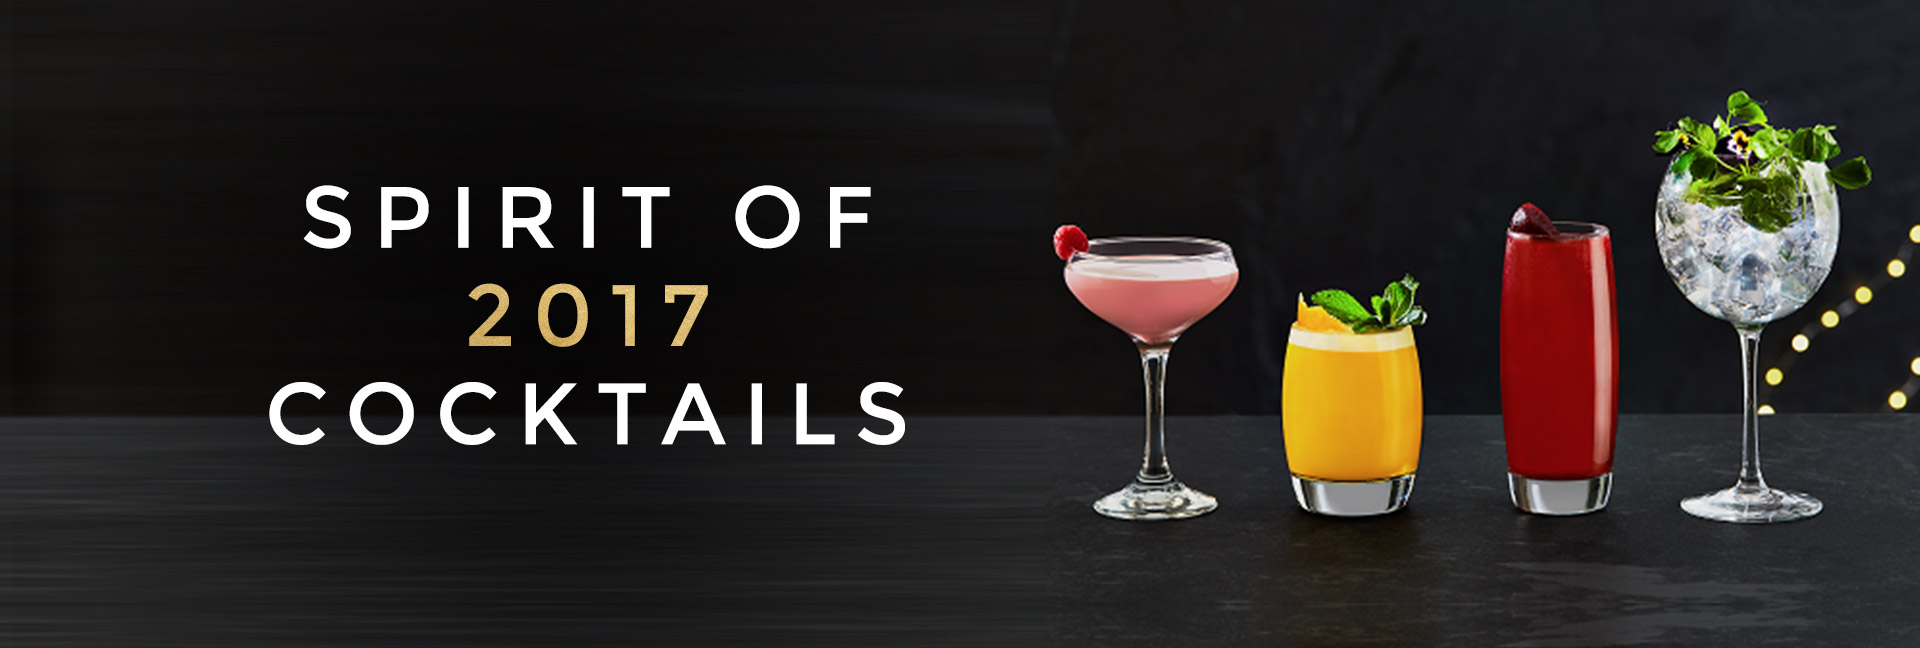 Spirit of 2017 cocktails at All Bar One Brindleyplace